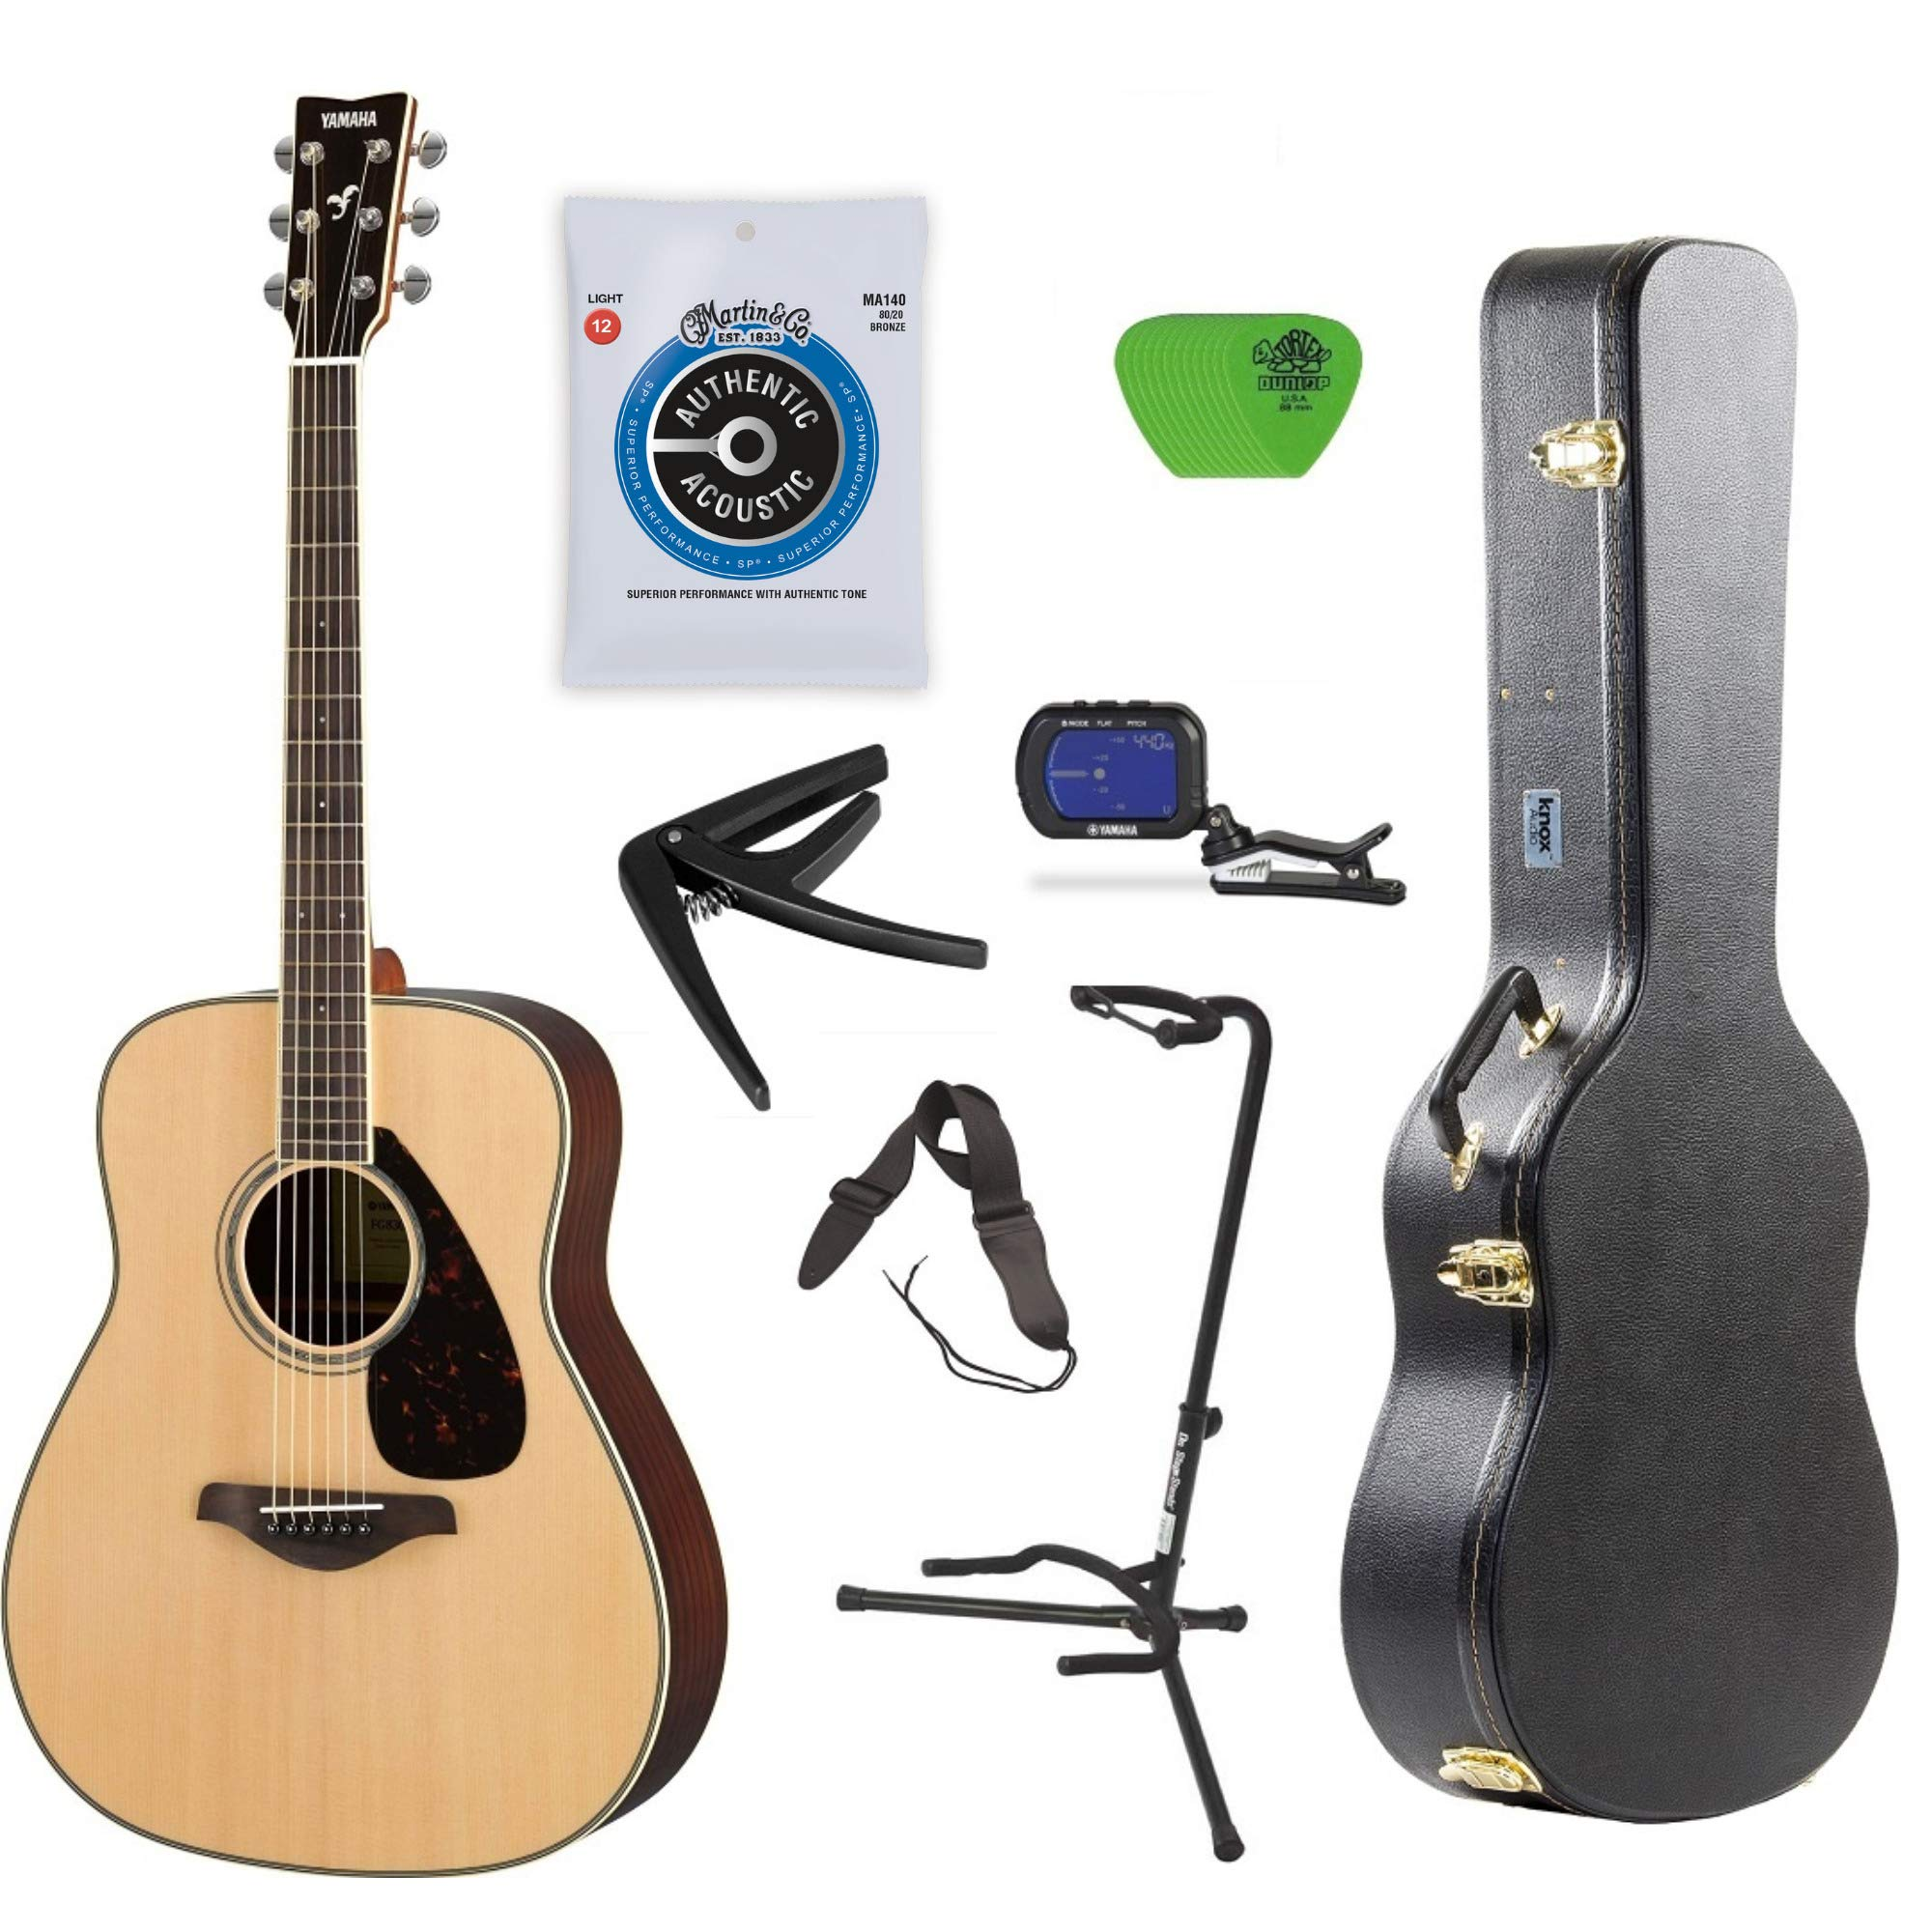 Yamaha FG800 Acoustic Guitar Solid Top with Knox Hard Shell Guitar Case,Tuner,Stand,strings,Stap,Capo and Picks